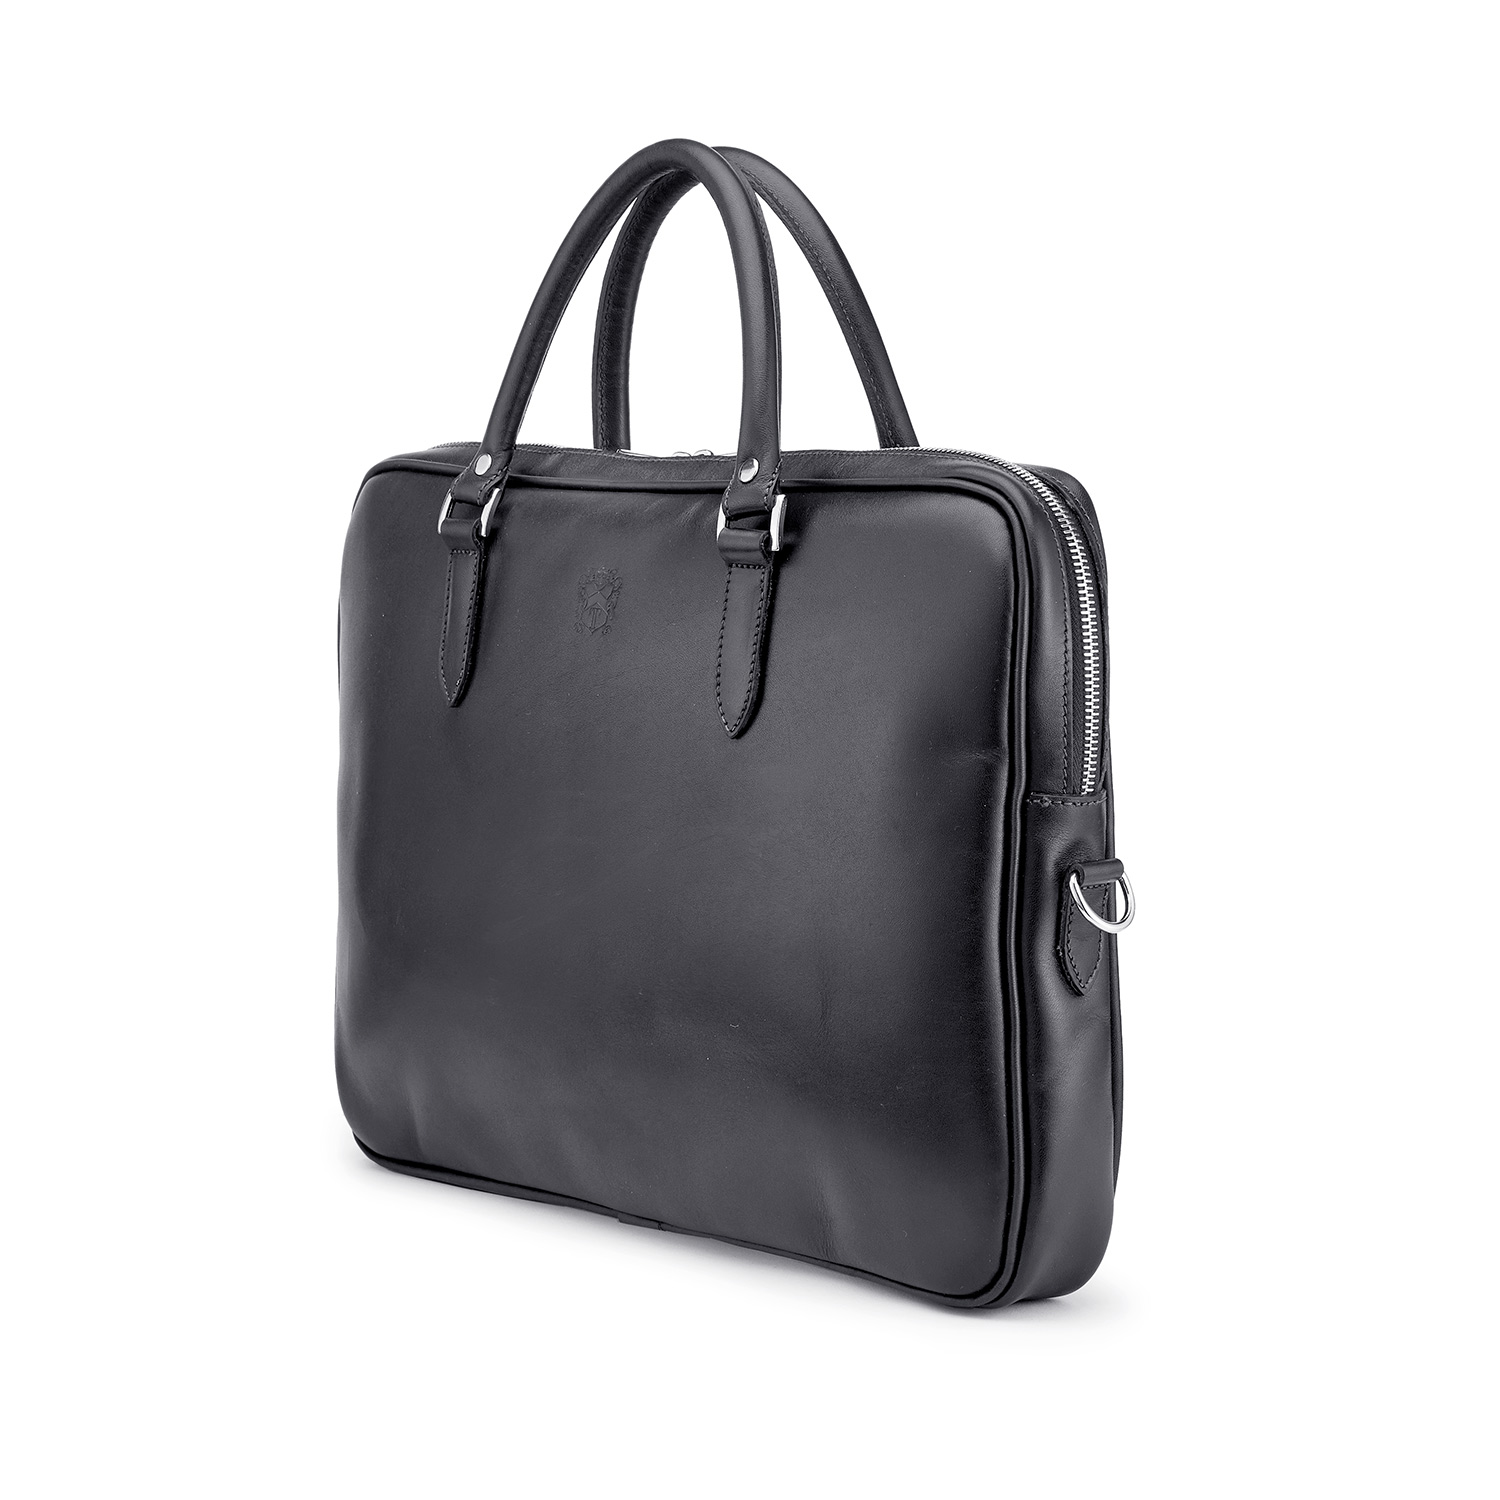 Tusting Piccadilly Leather Briefcase in Black Angle